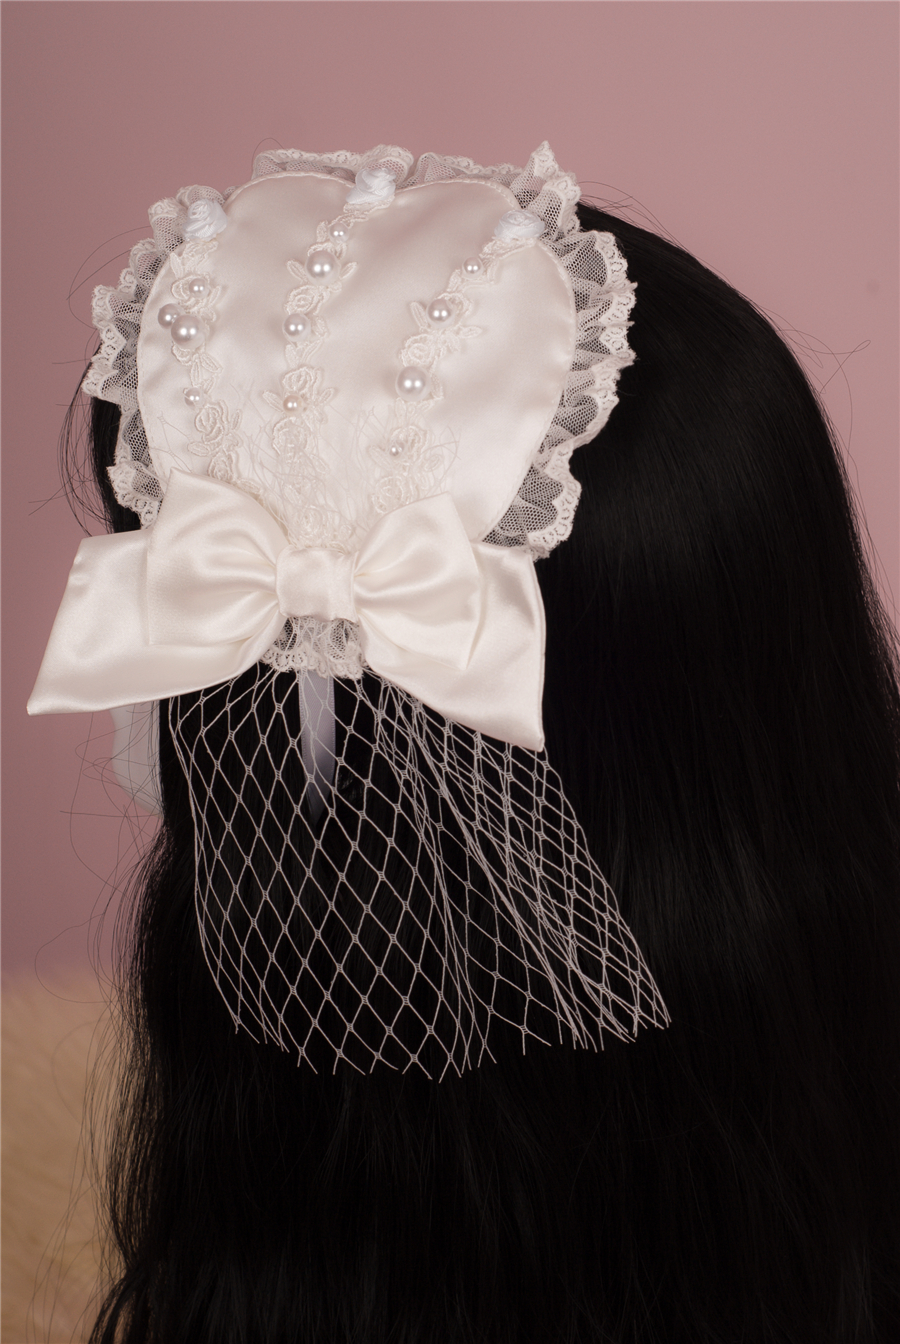 Babyponytail_Stock Photo_Present Angel_Accessories_1.jpg